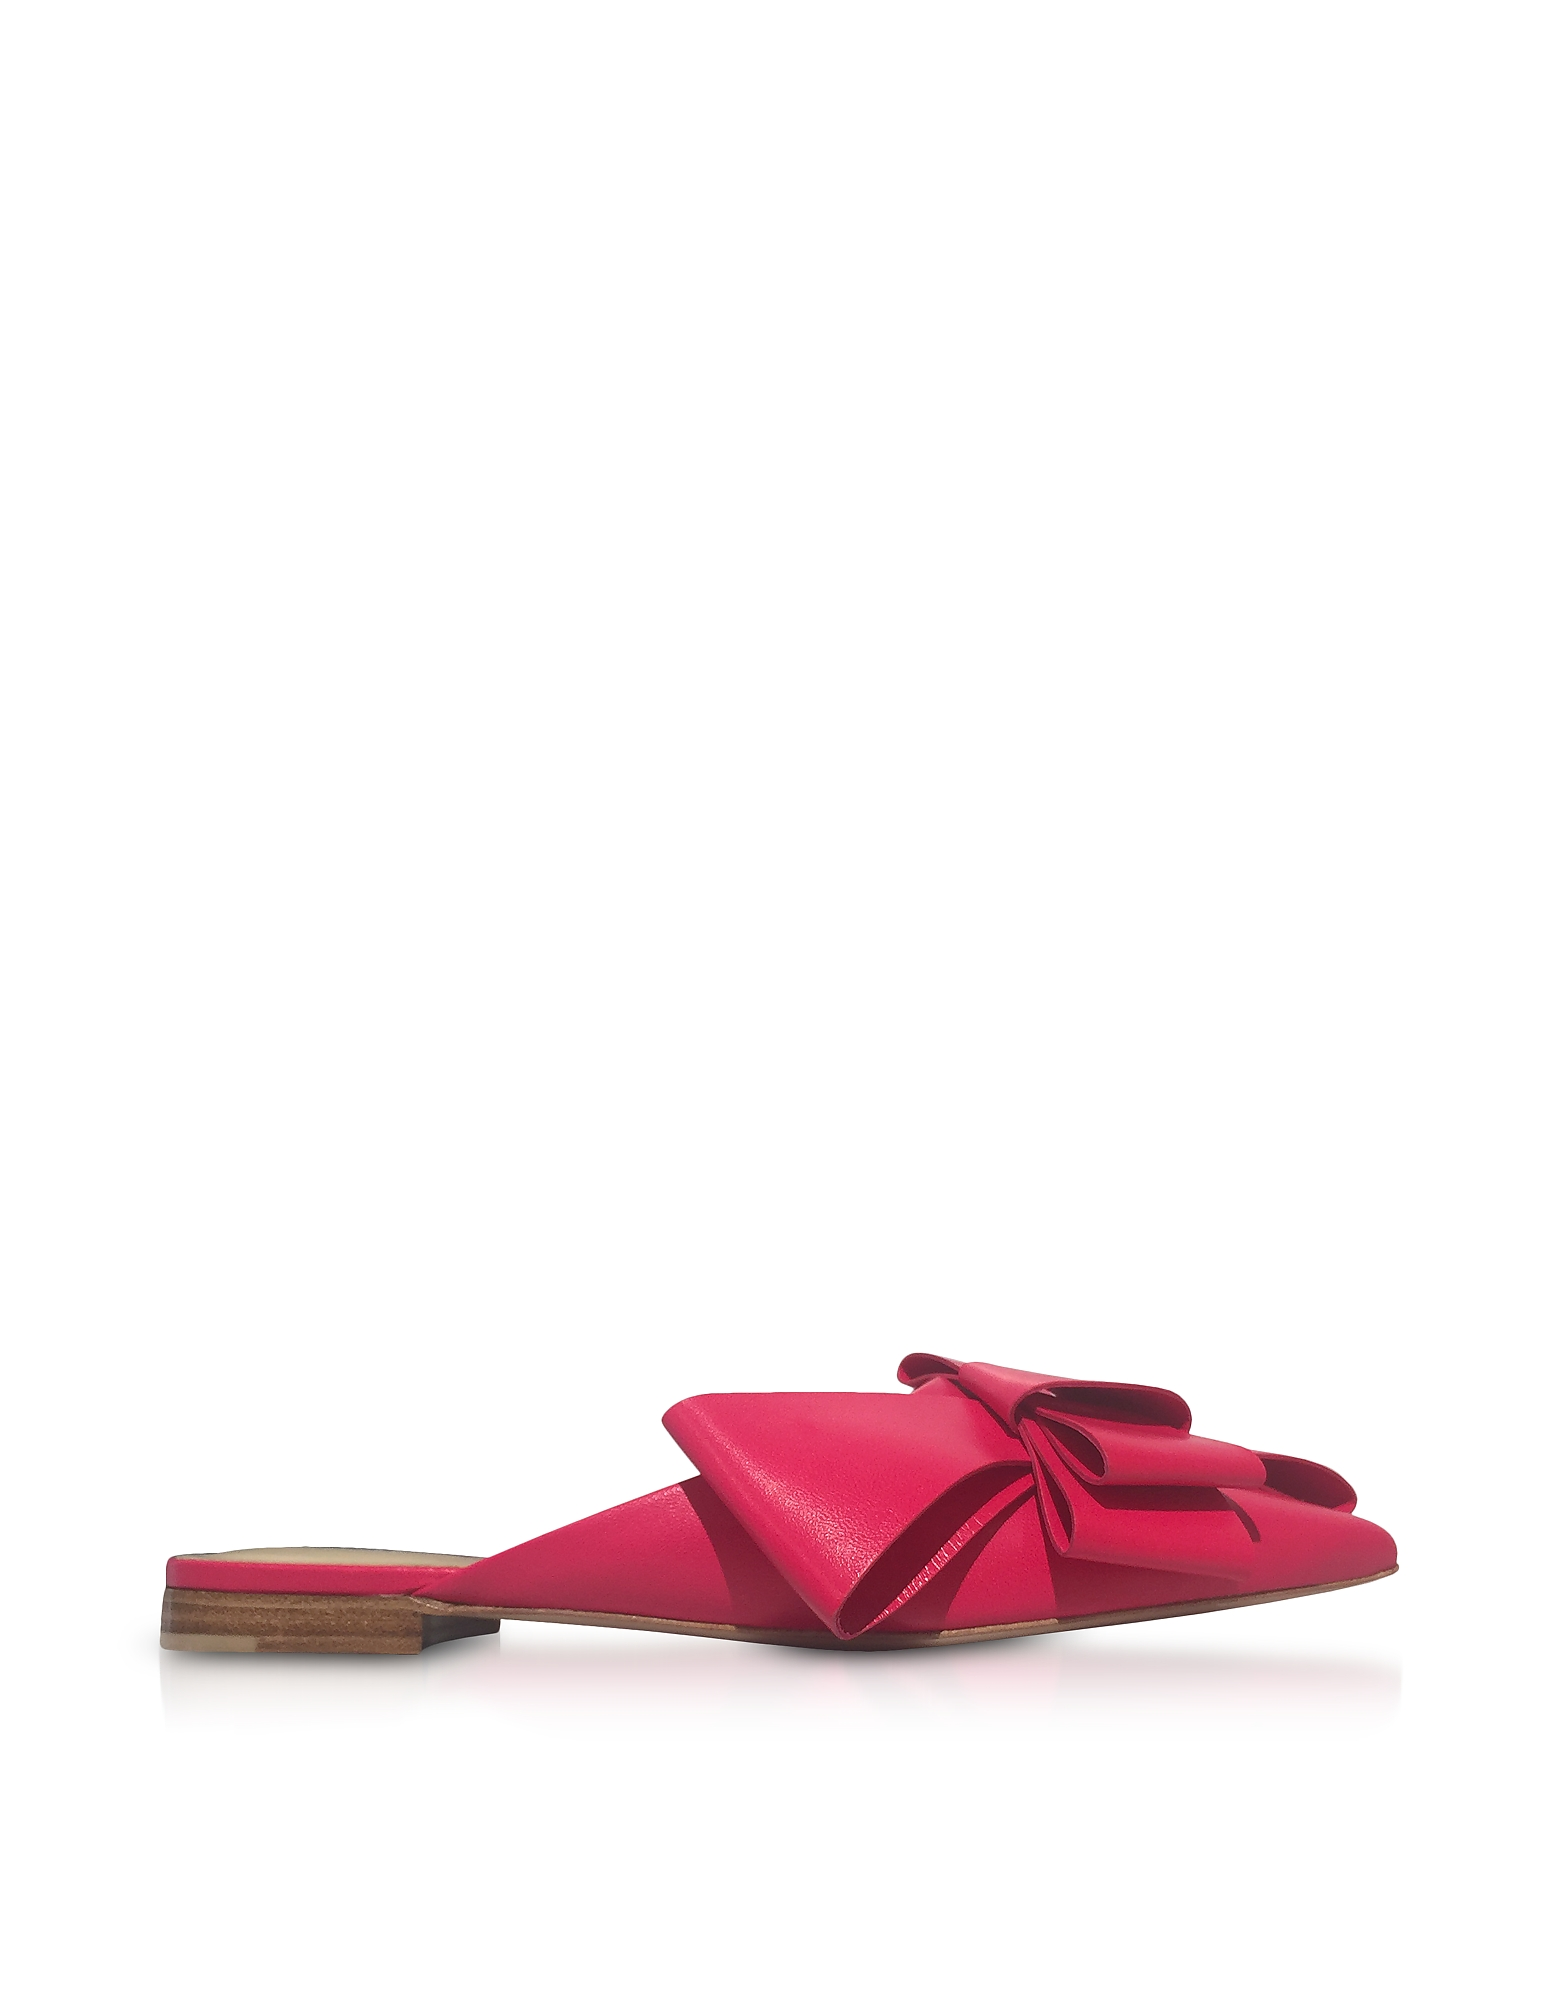 Delpozo Shoes, Genuine Leather Bow Mules